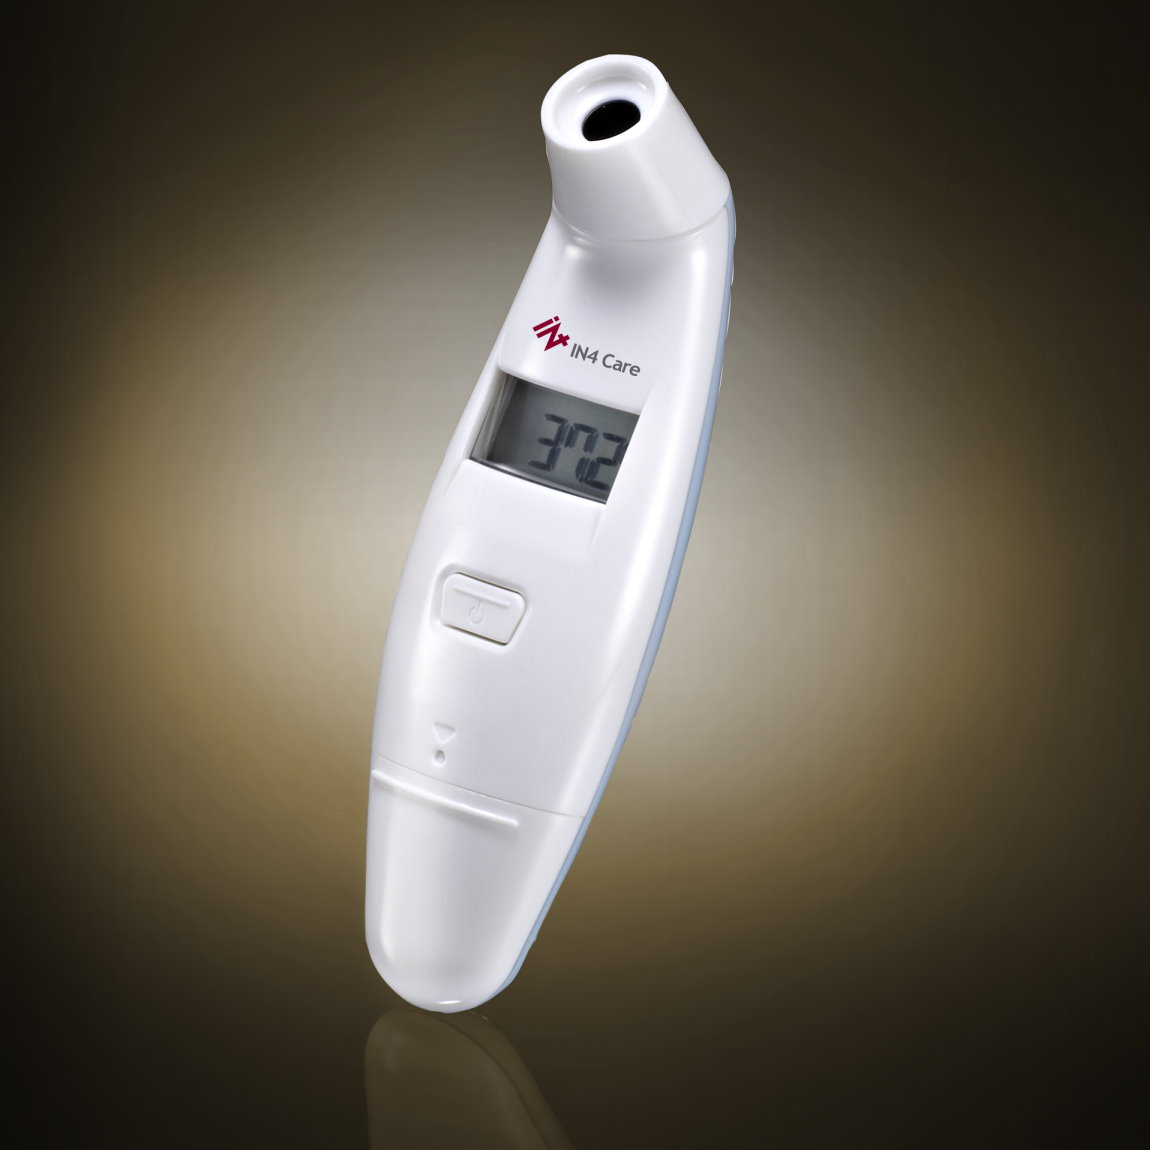 proimages/TF11_Forehead_thermometer/TF11-a.jpg